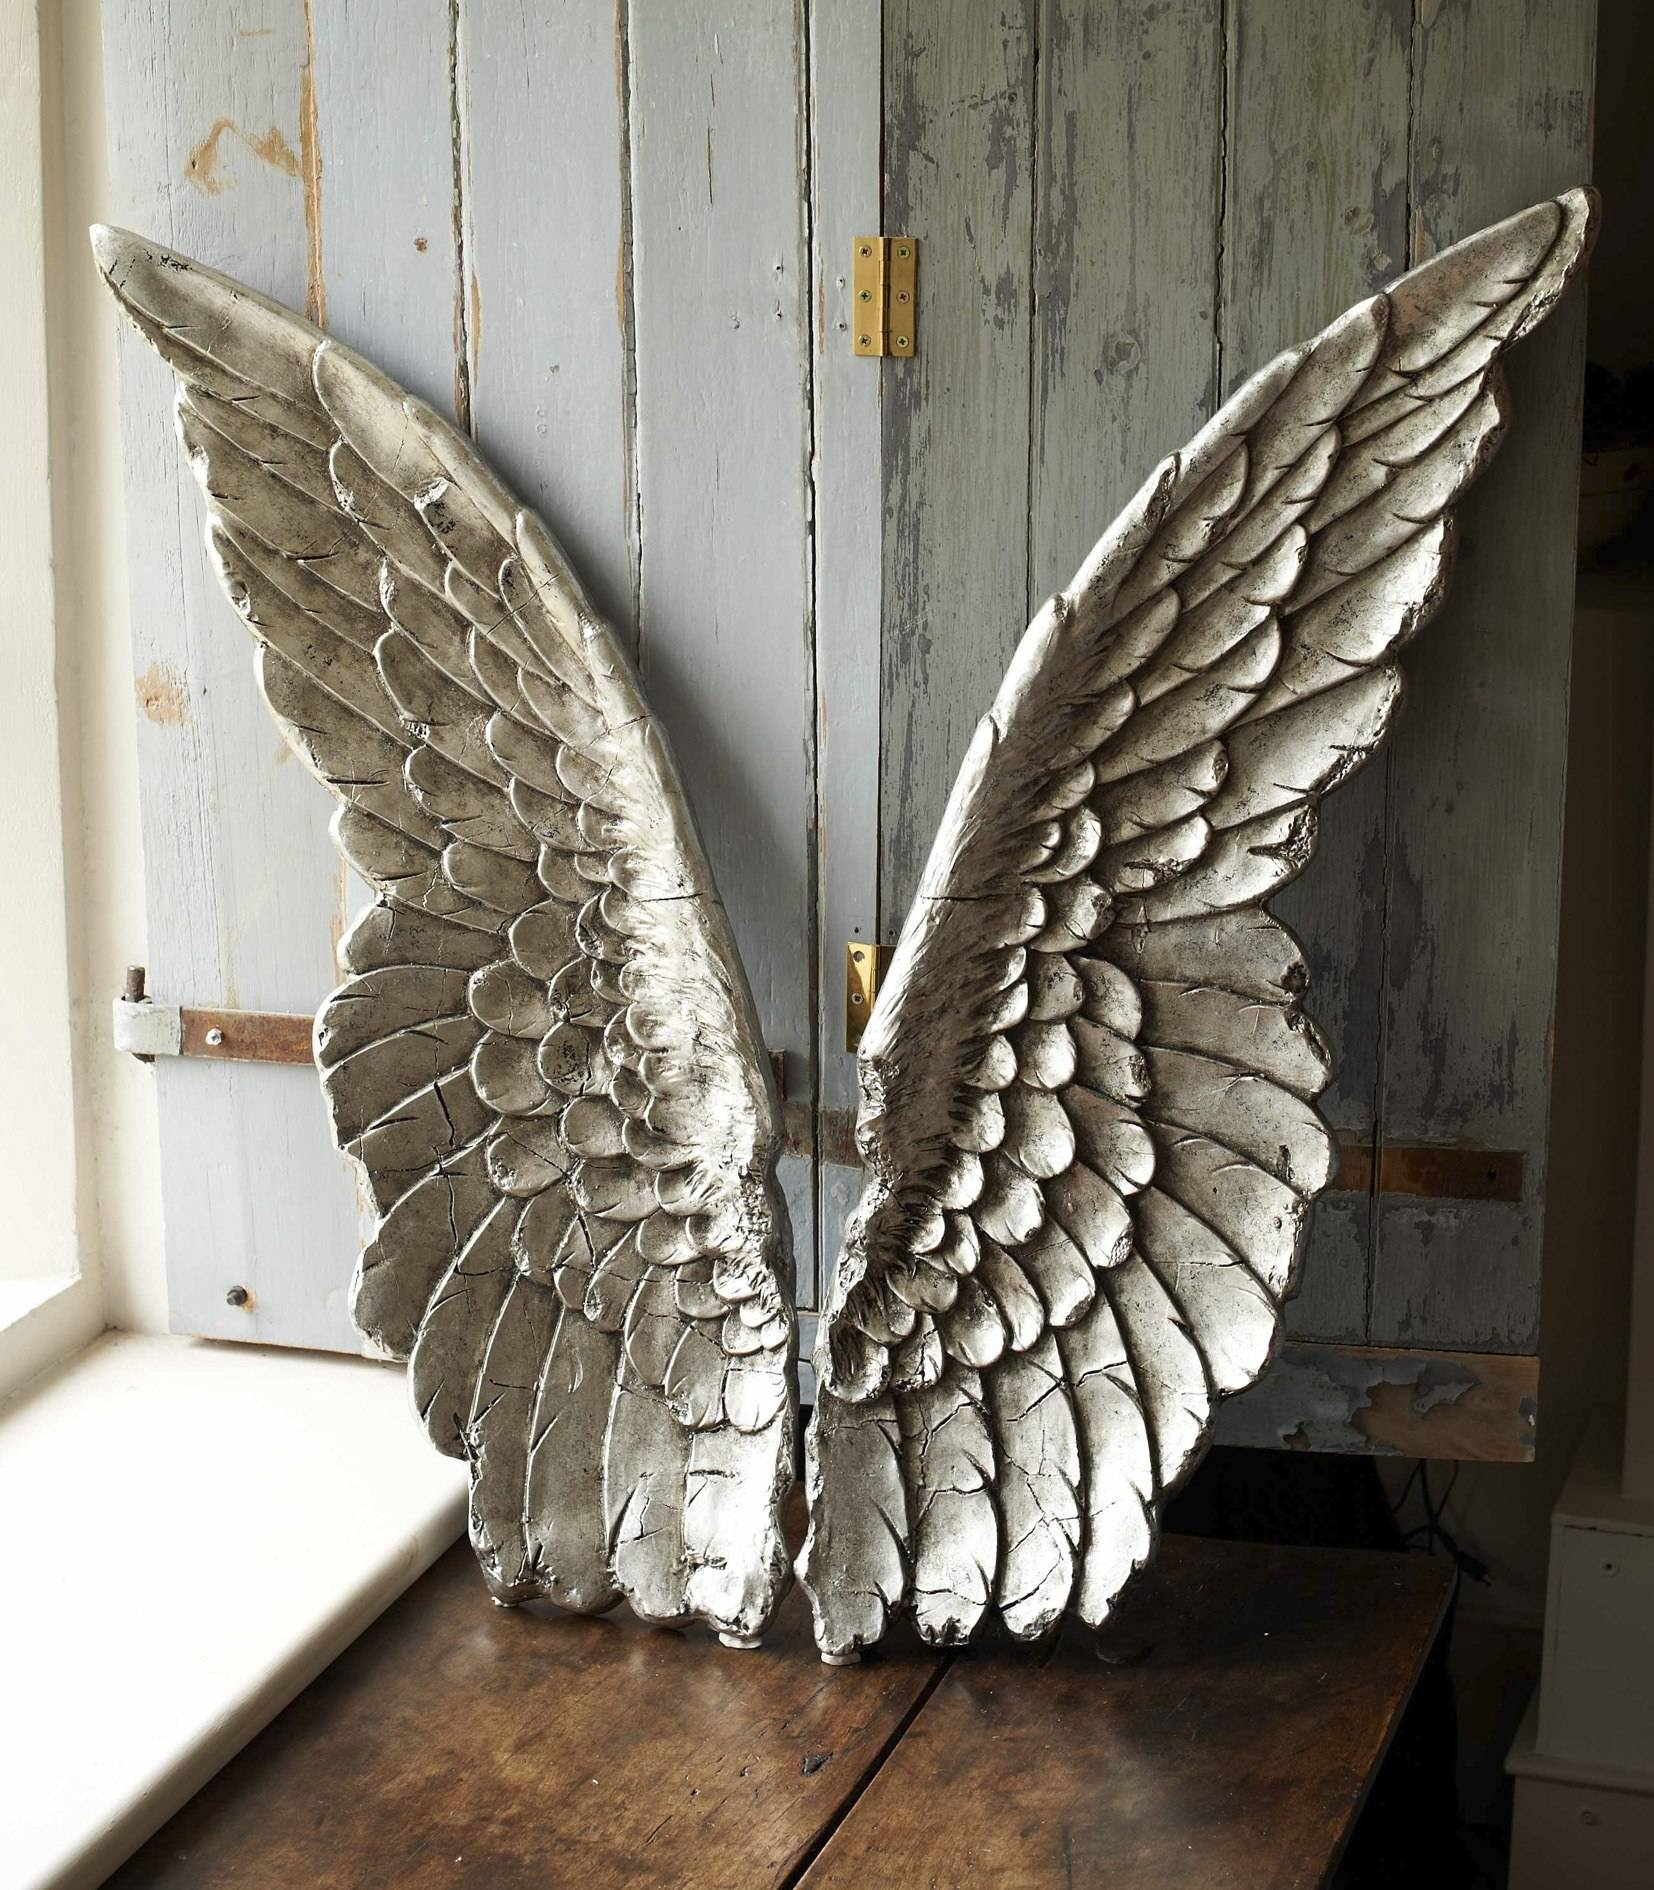 Best Angel Wings Wall Decor : Garnish With Angel Wings Wall Decor Regarding Most Up To Date Angel Wings Wall Art (View 2 of 20)